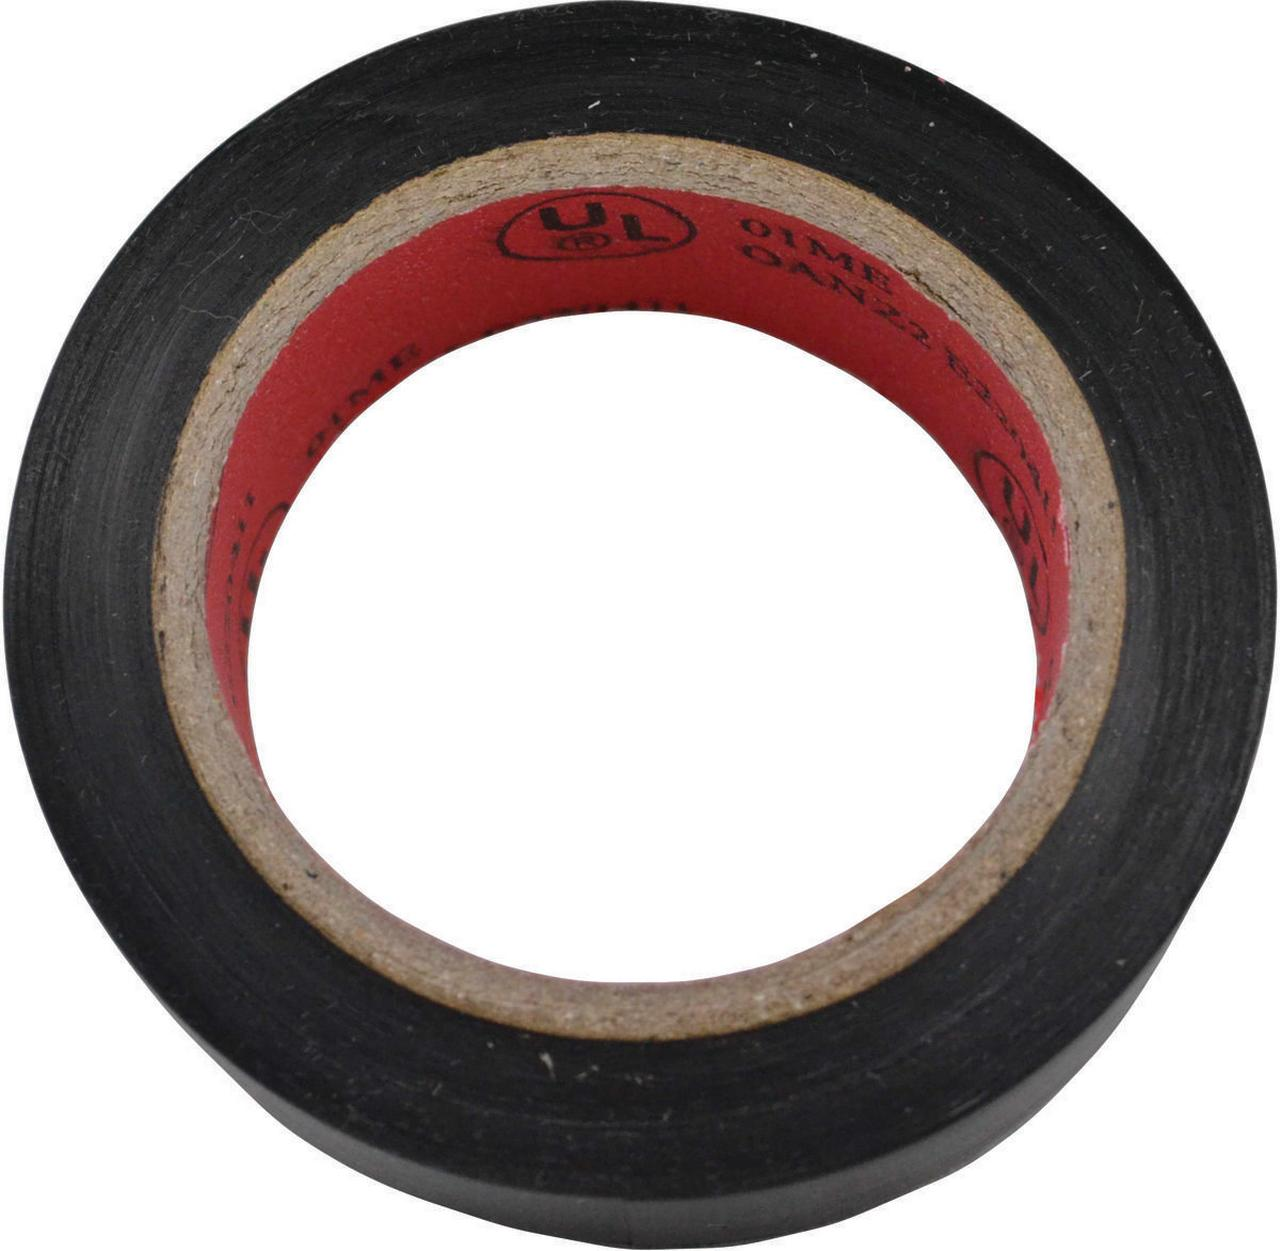 Toolbasix ET-303L Electrical Tape, 3/4 in W x 30 ft L, Black